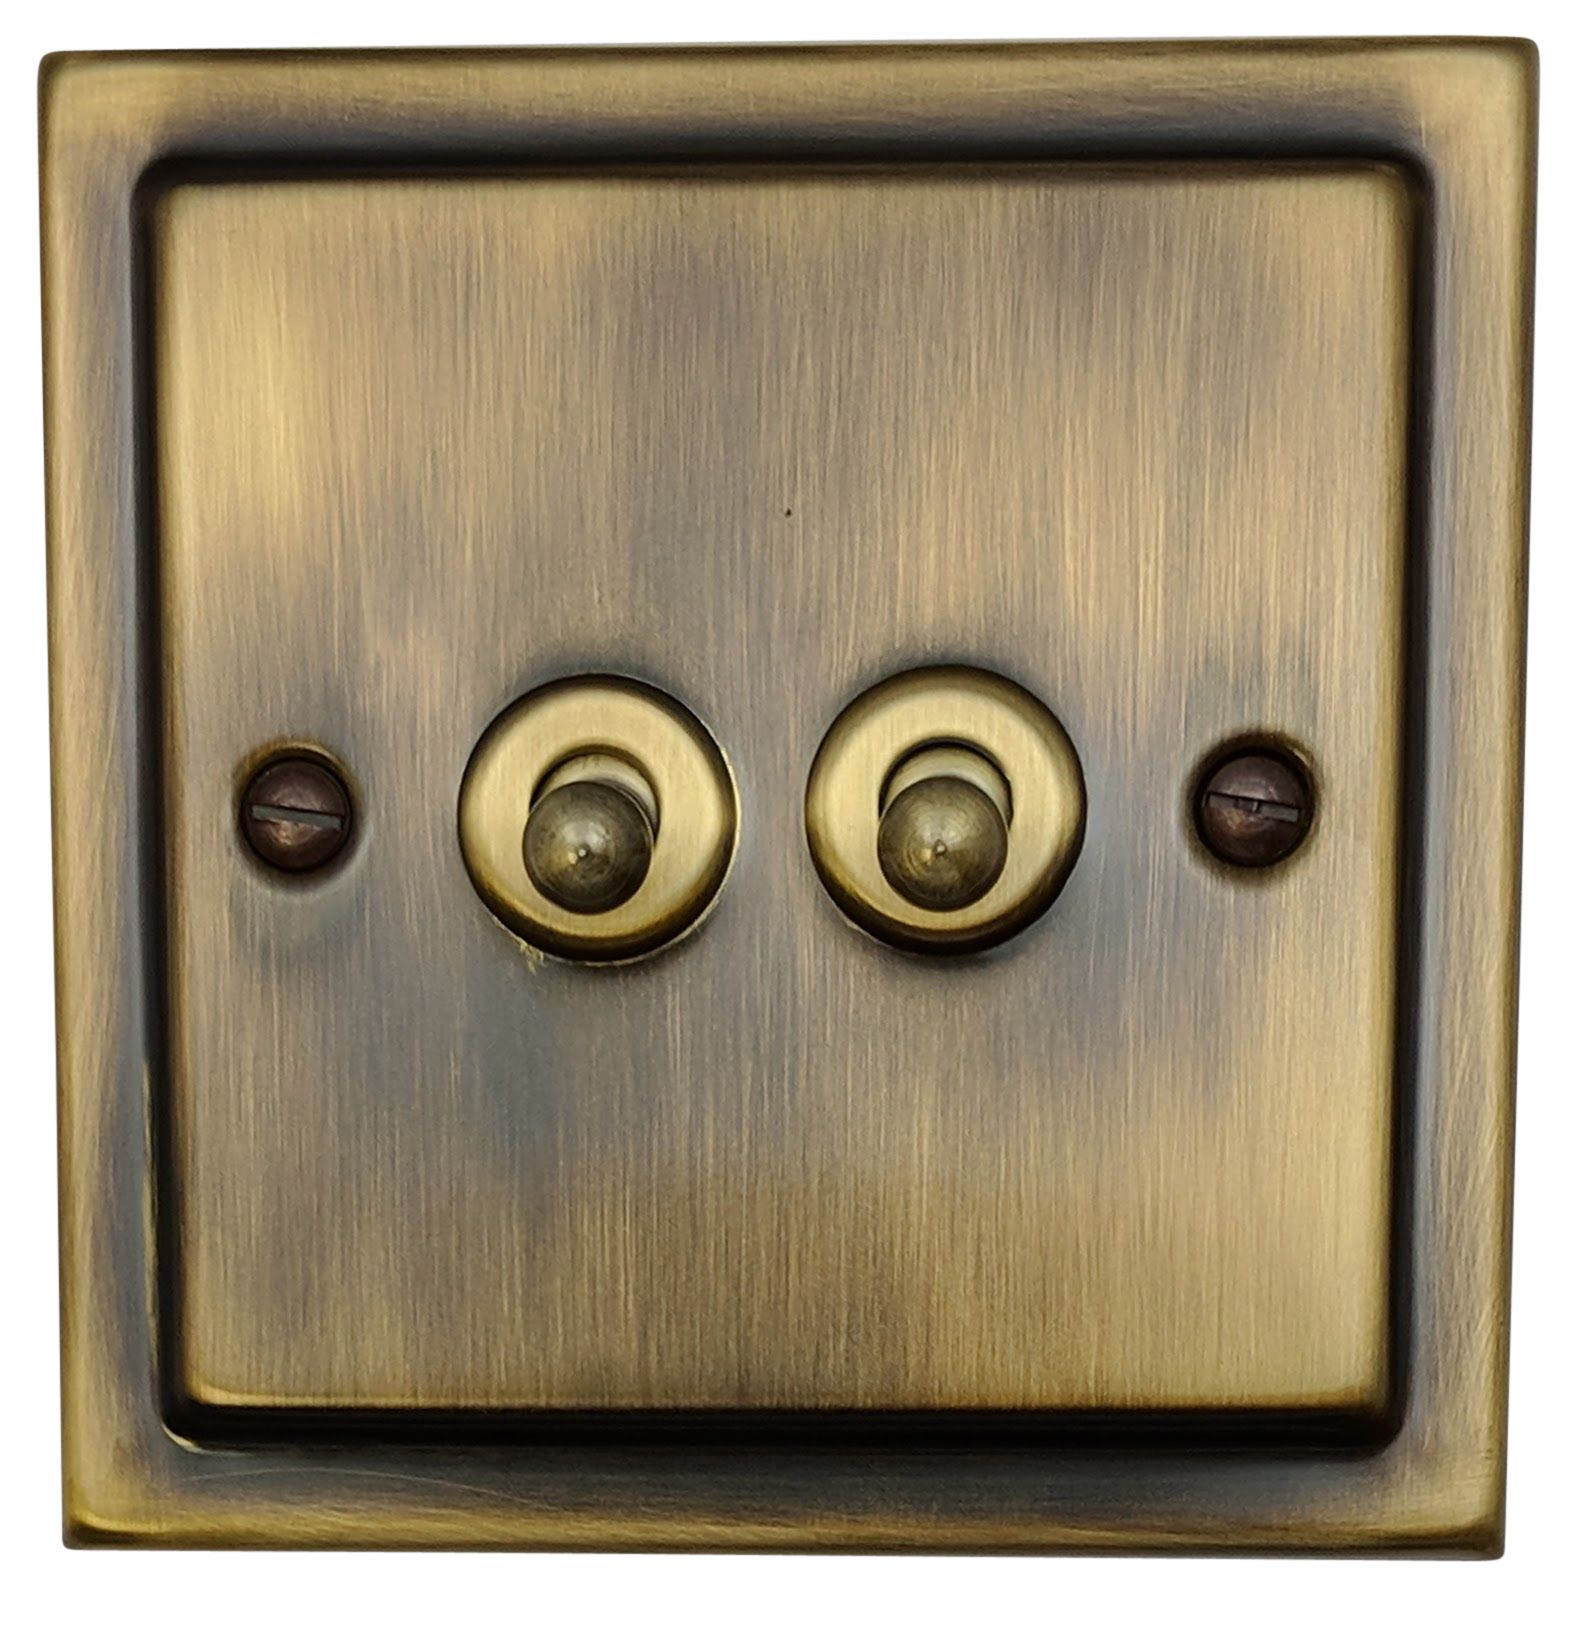 G H Tab282 Trimline Plate Antique Bronze 2 Gang 1 Or 2 Way Toggle Light Switch